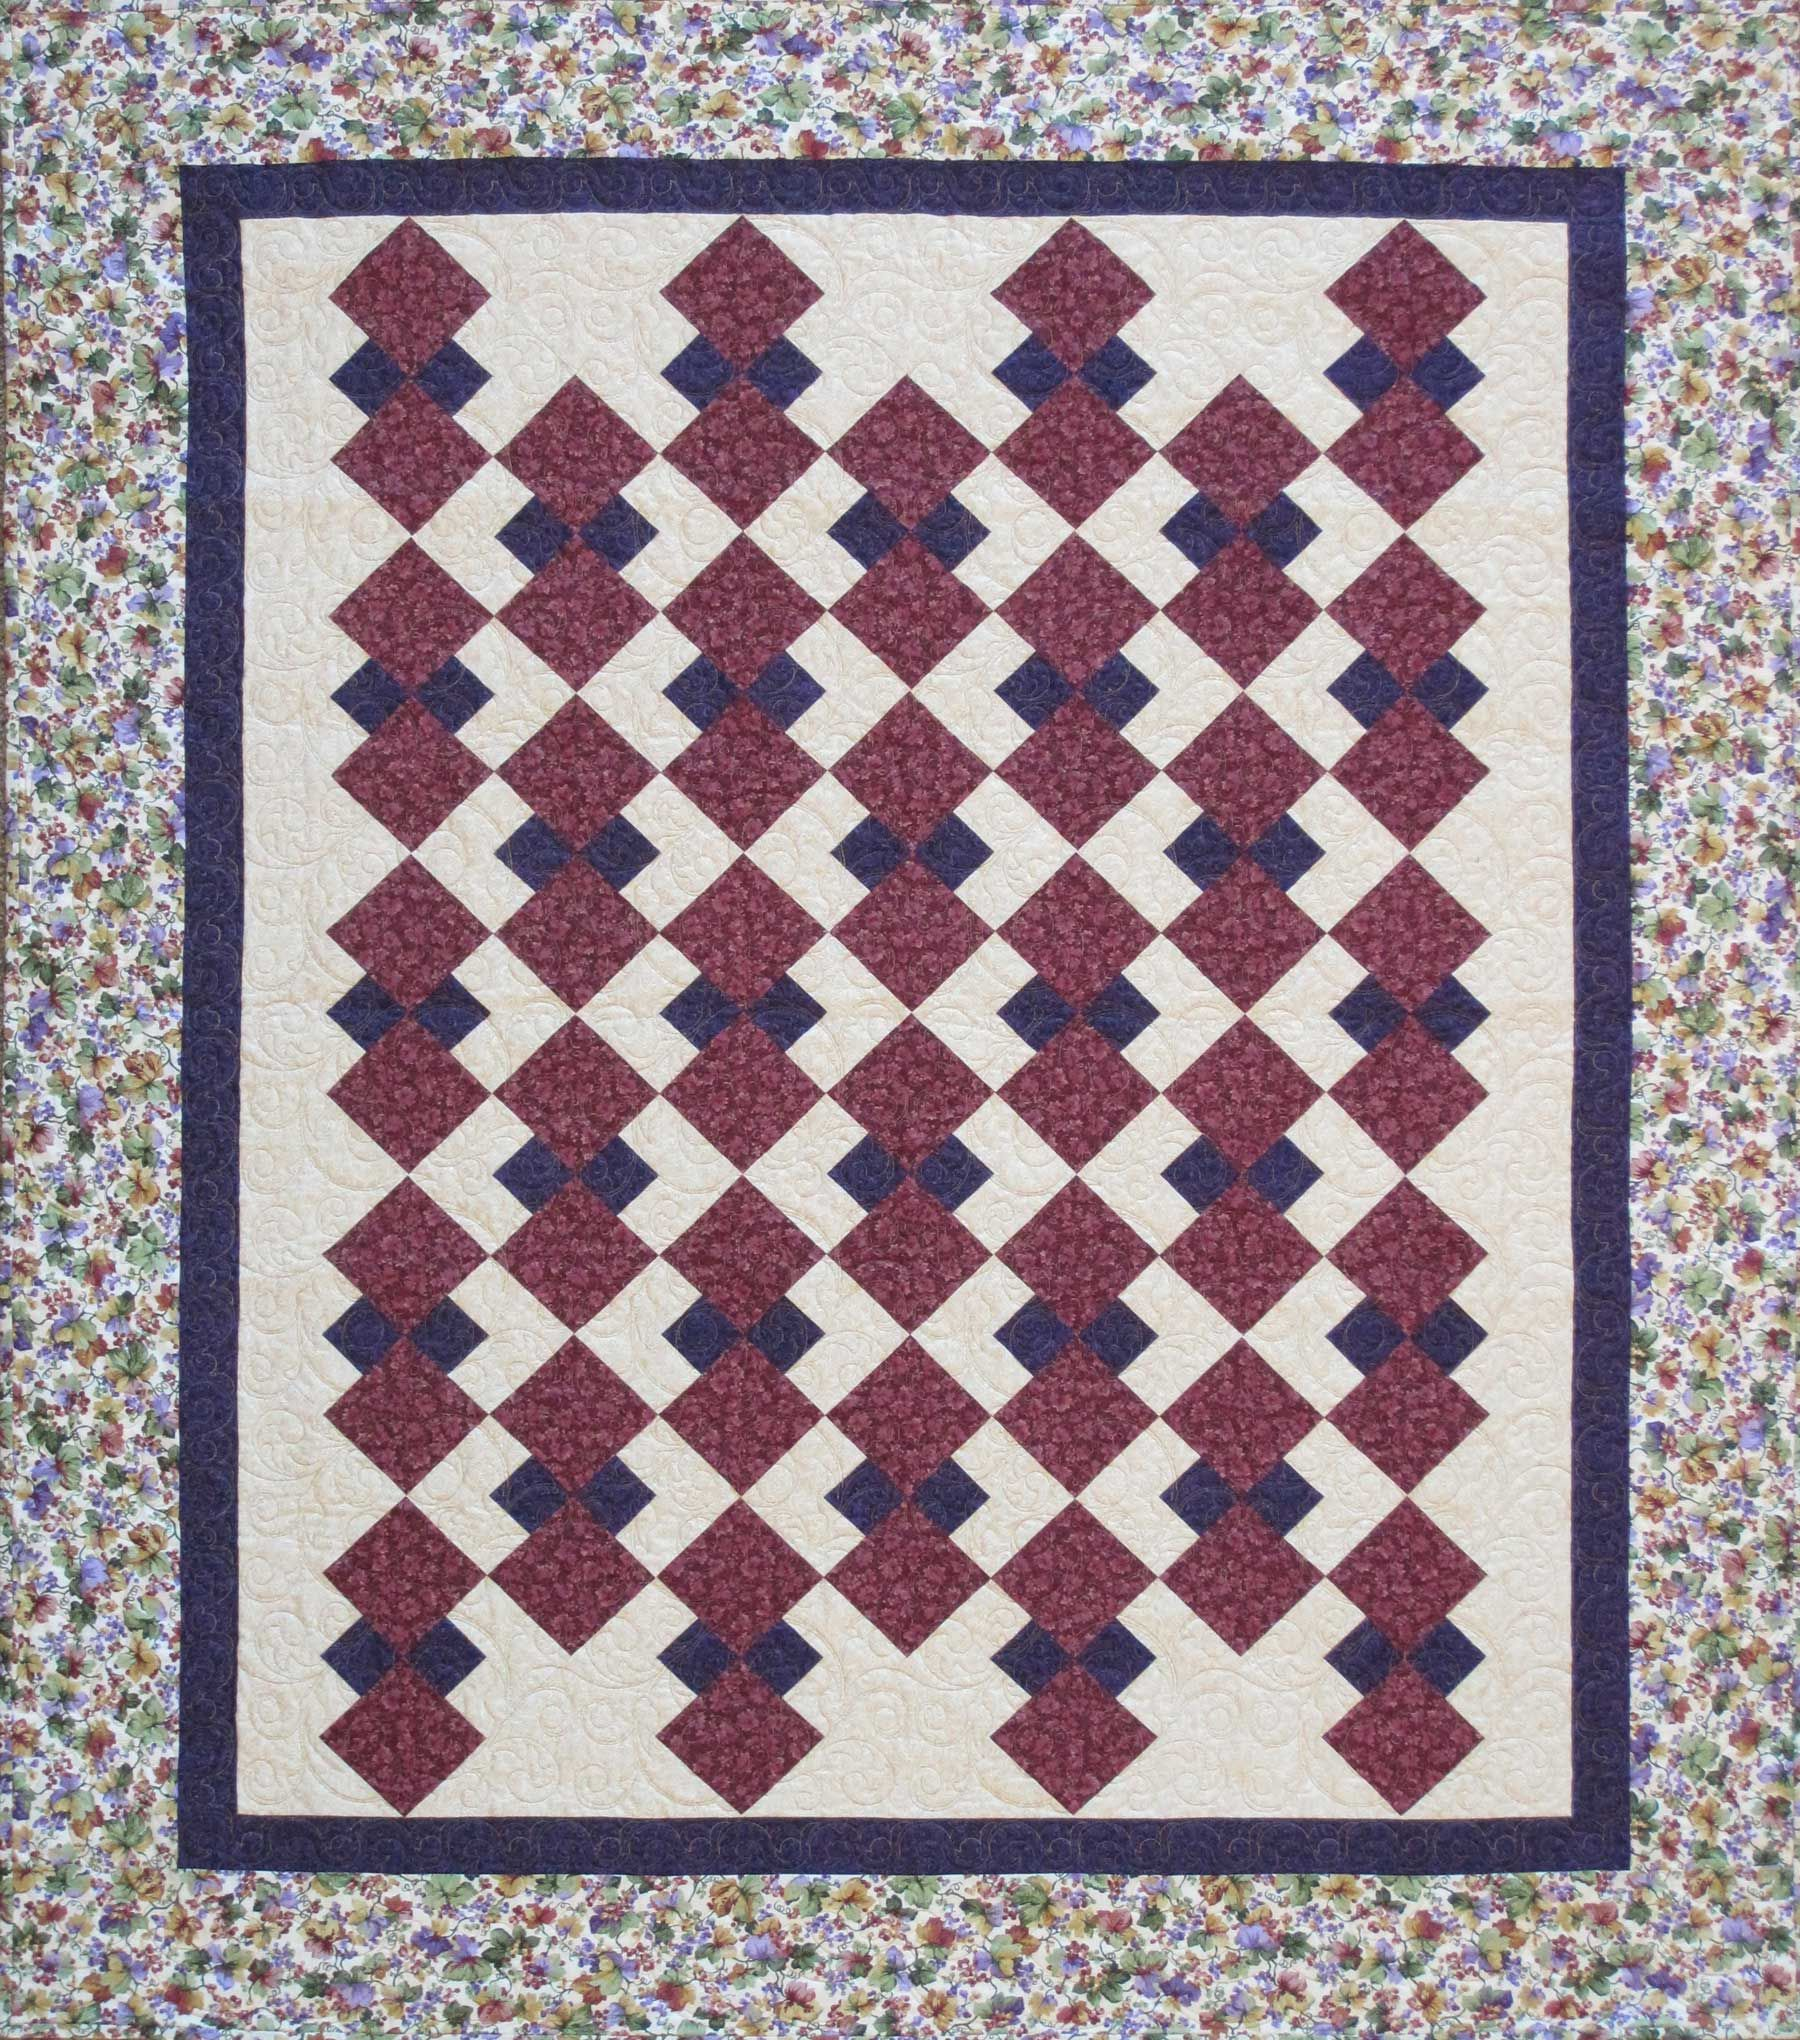 The Giving Quilt: Have you been inspired to make a Giving Quilt ... : project linus quilt patterns - Adamdwight.com